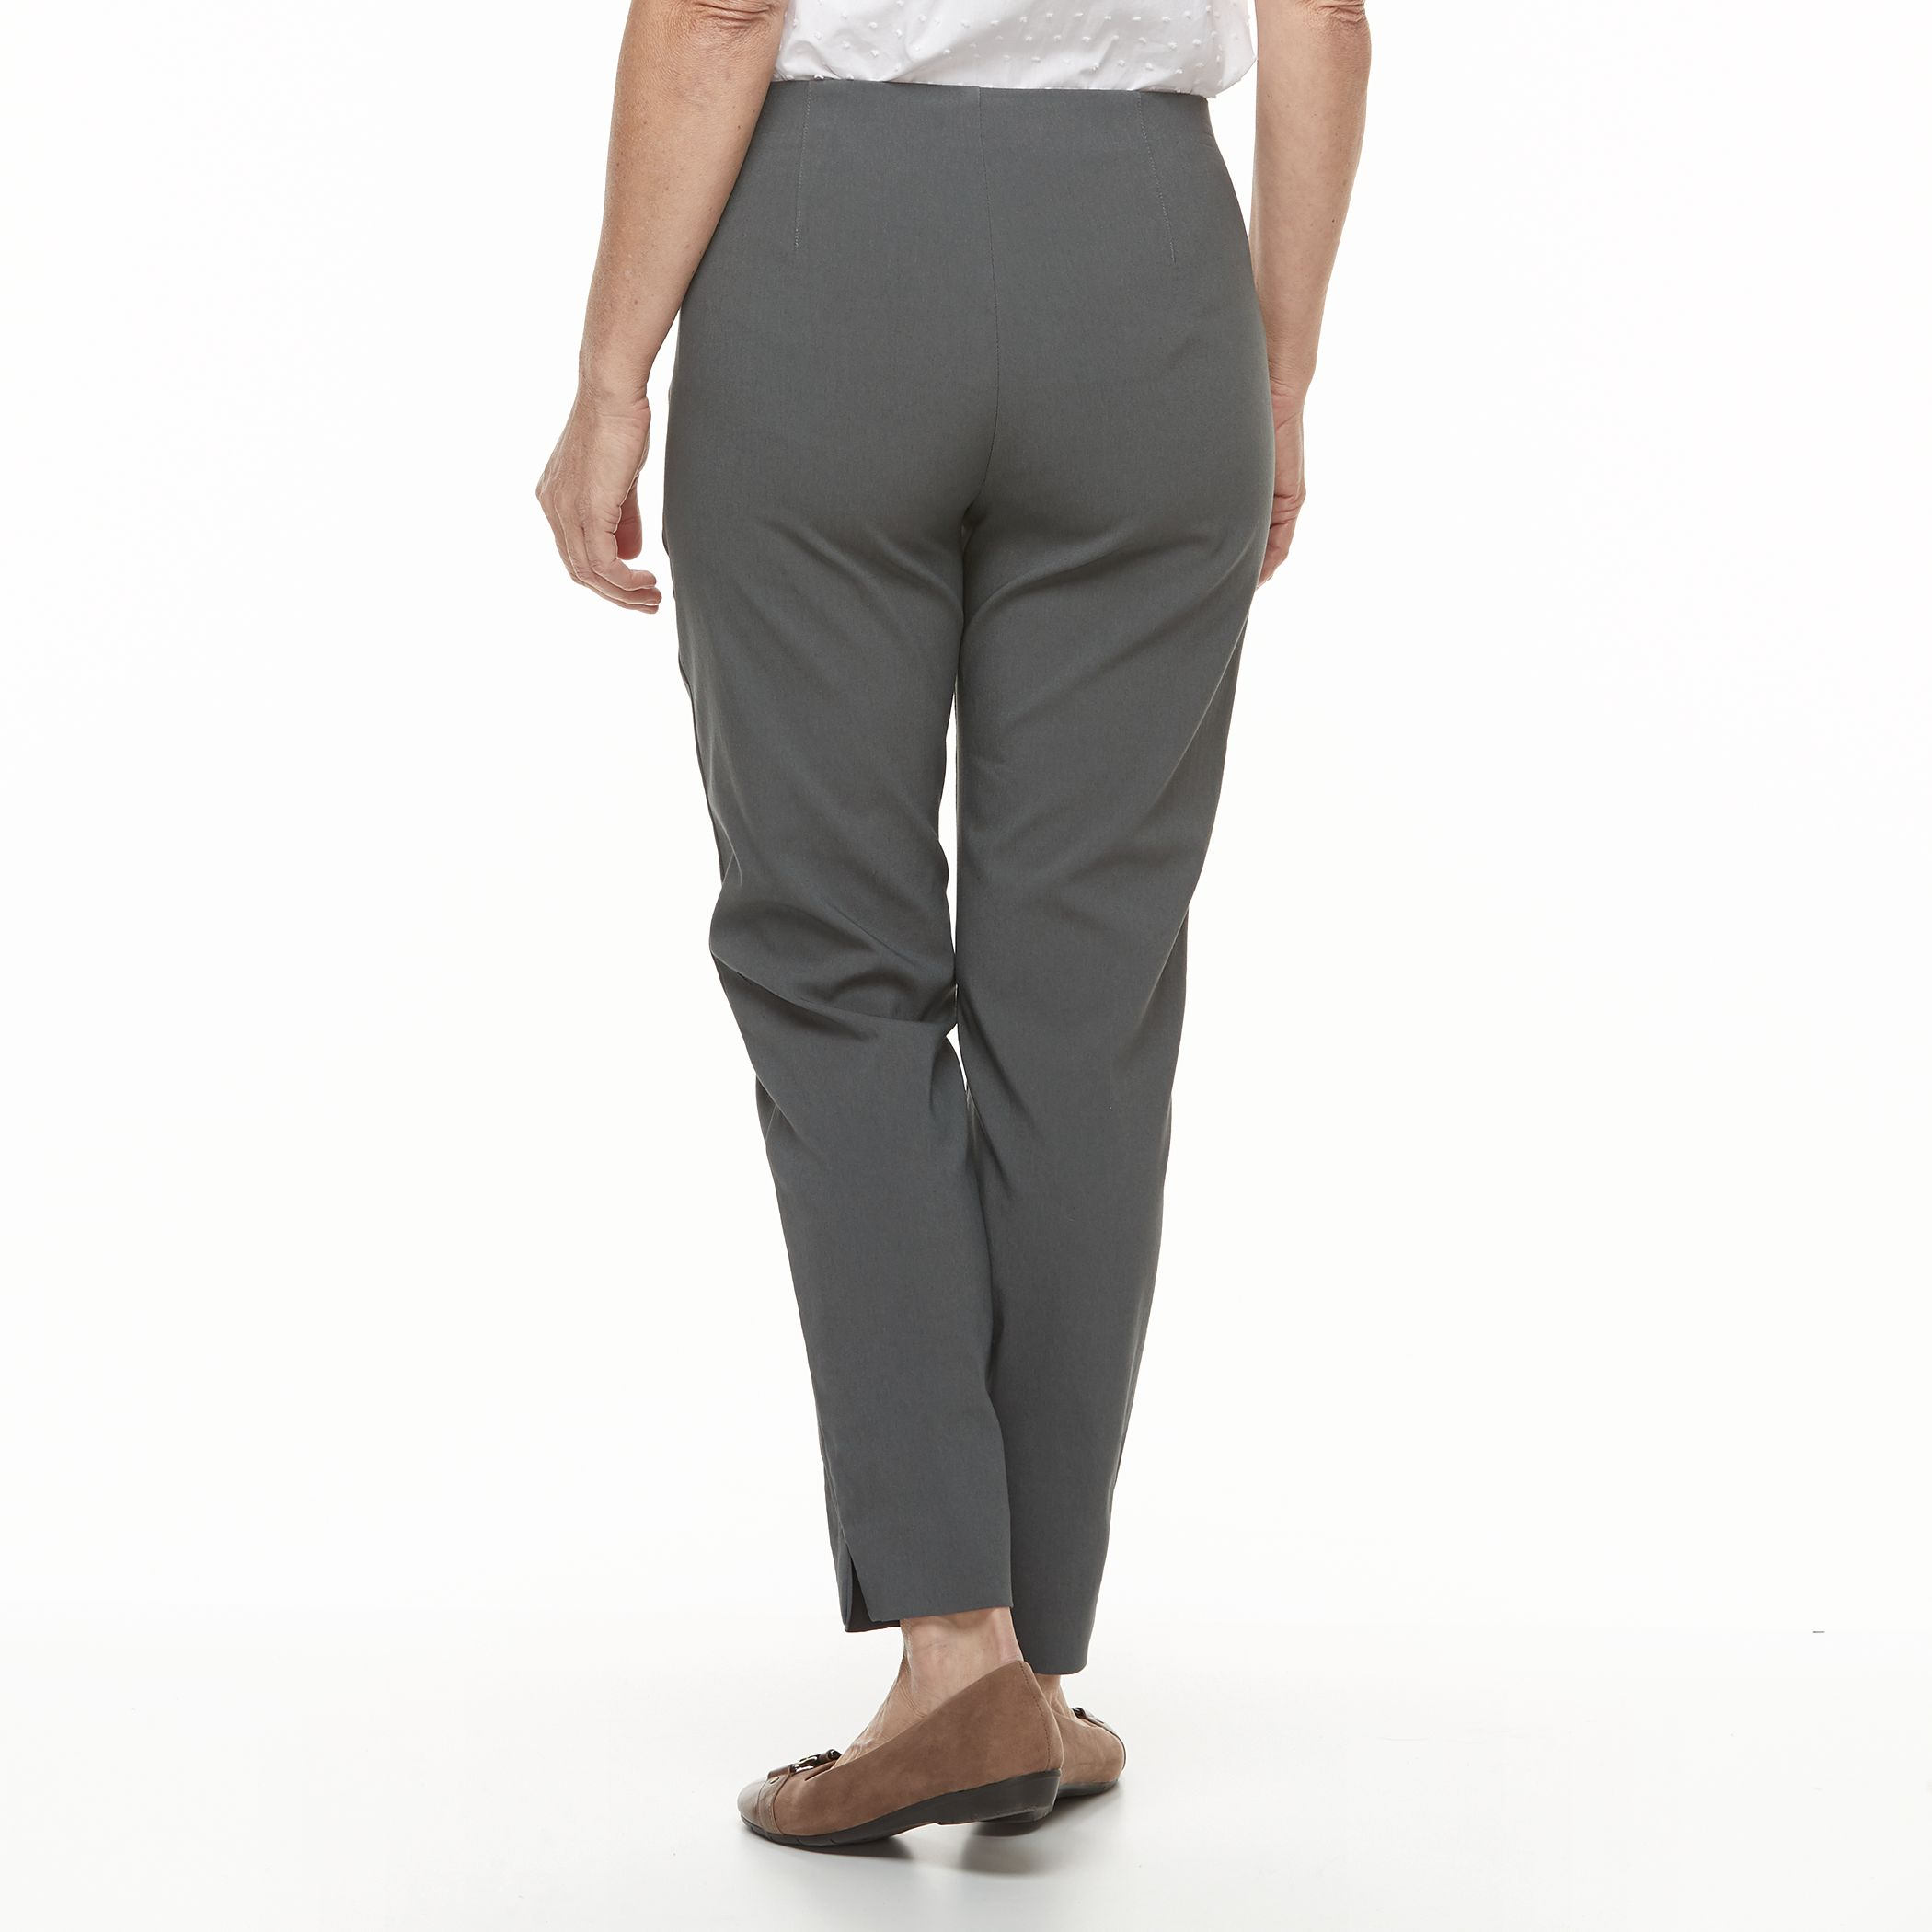 low price to buy reliable reputation Womens Croft & Barrow Pants - Bottoms, Clothing   Kohl's